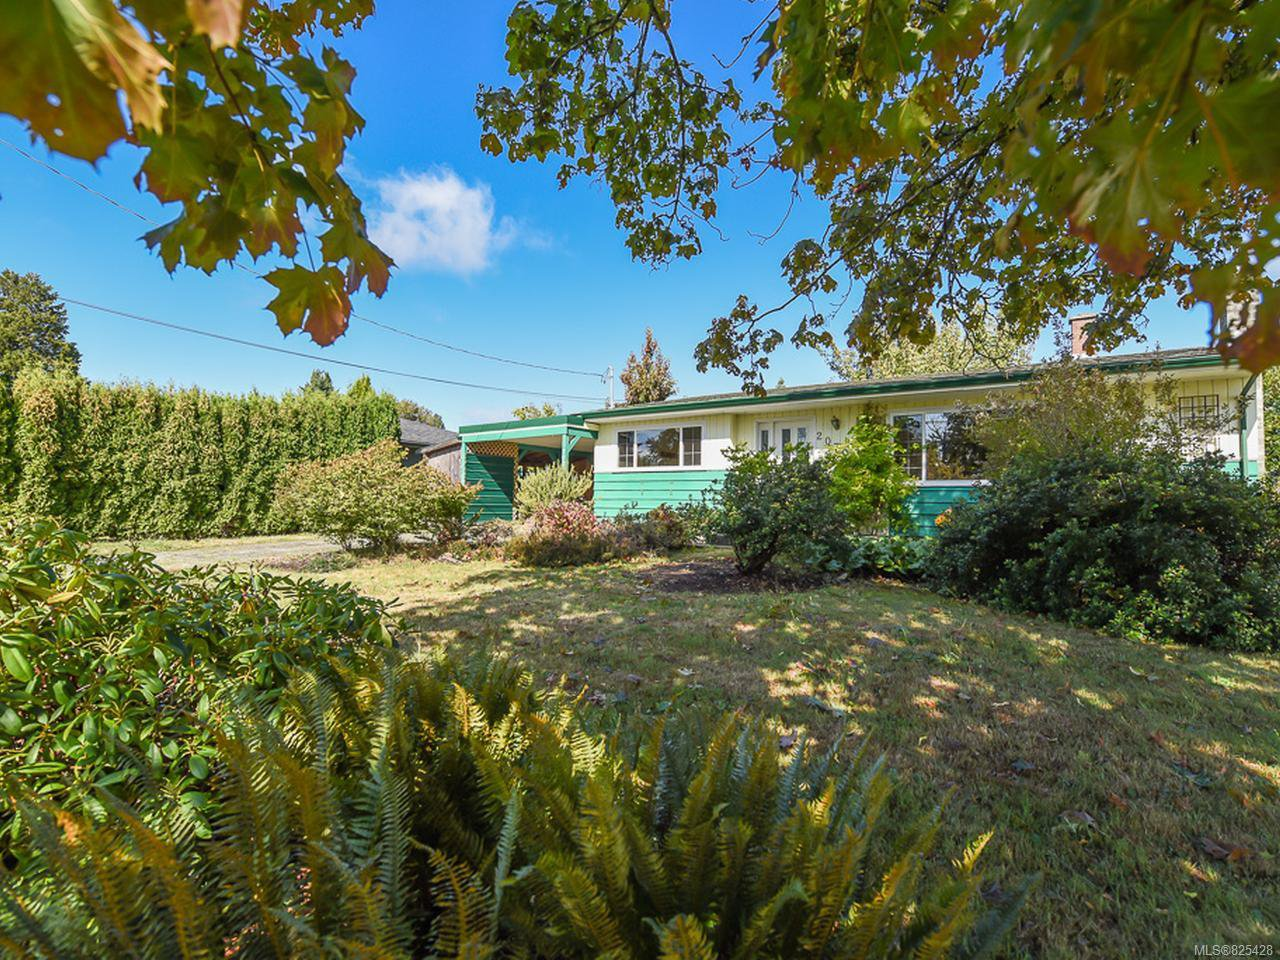 Main Photo: 2070 Cooke Ave in COMOX: CV Comox (Town of) House for sale (Comox Valley)  : MLS®# 825428